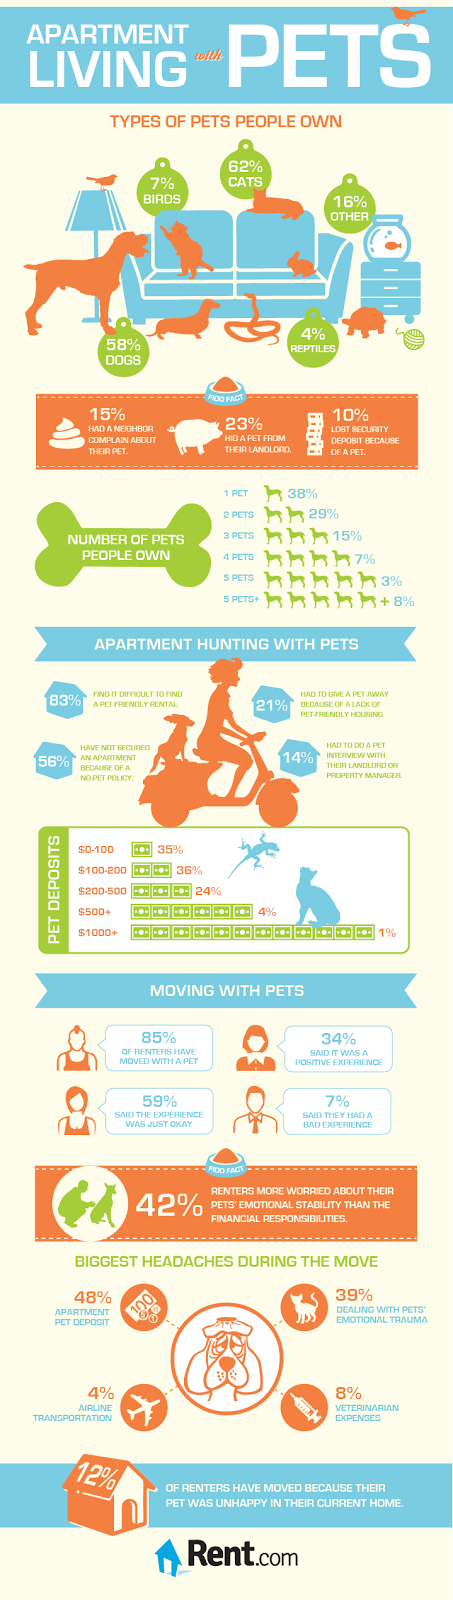 Apartment Living With Pets  Tips to Help Reduce Stress During a Move  Pawsitively Pets